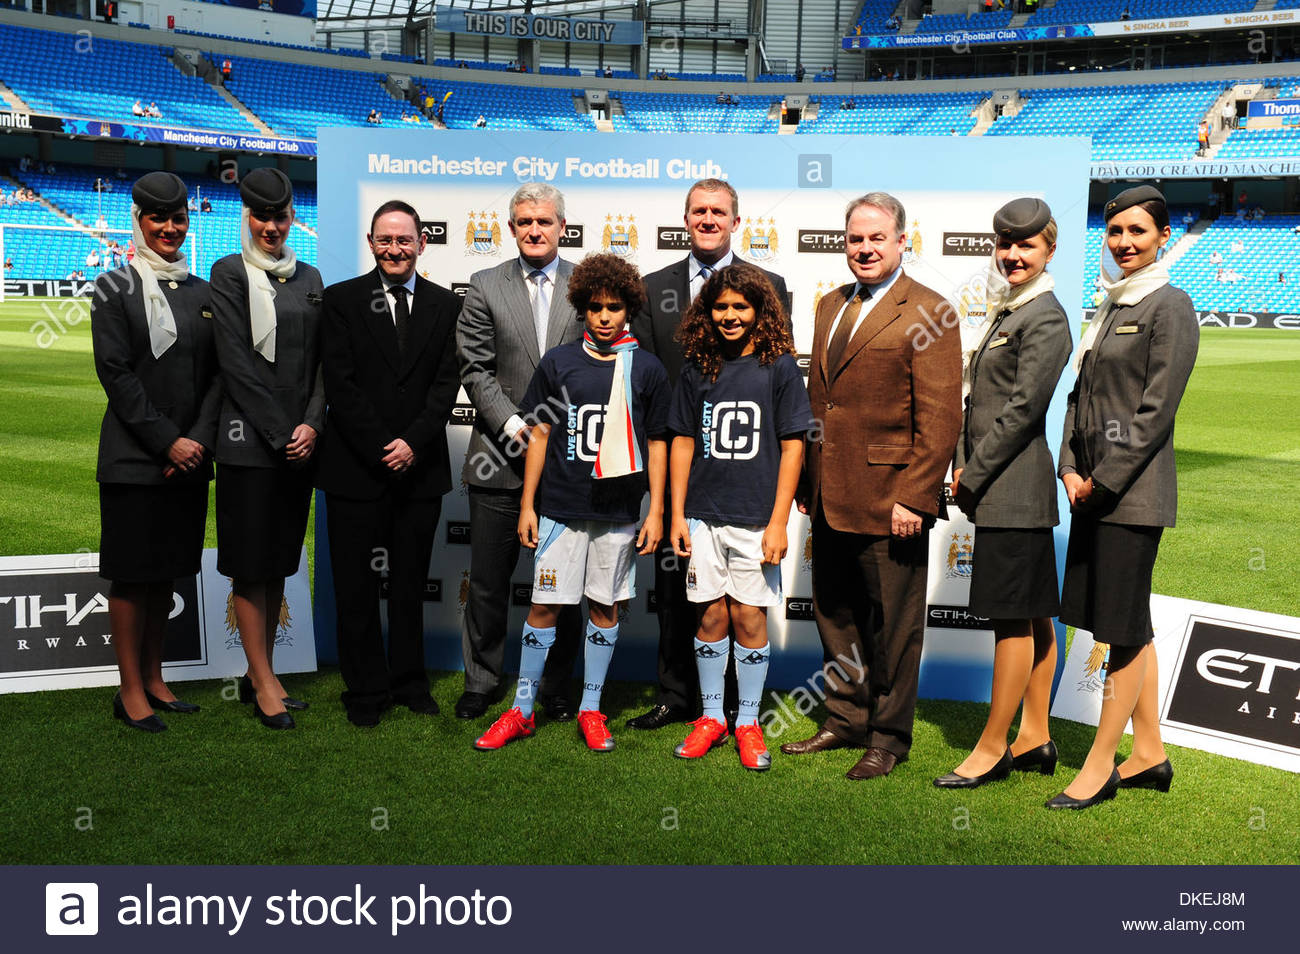 L-R) Sir Howard Bernstein, Chief Executive of Manchester City Council, Manager Mark Hughes, Garry Cook, Chief Executive of Manchester City FC and James Hogan, Chief Executive of Etihad Airways attend a photocall before the Barclays Premier League match between Manchester City and Bolton Wanderers at the City of Manchester Stadium on May 24, 2009 in Manchester, England. Etihad Airwa - Stock Image